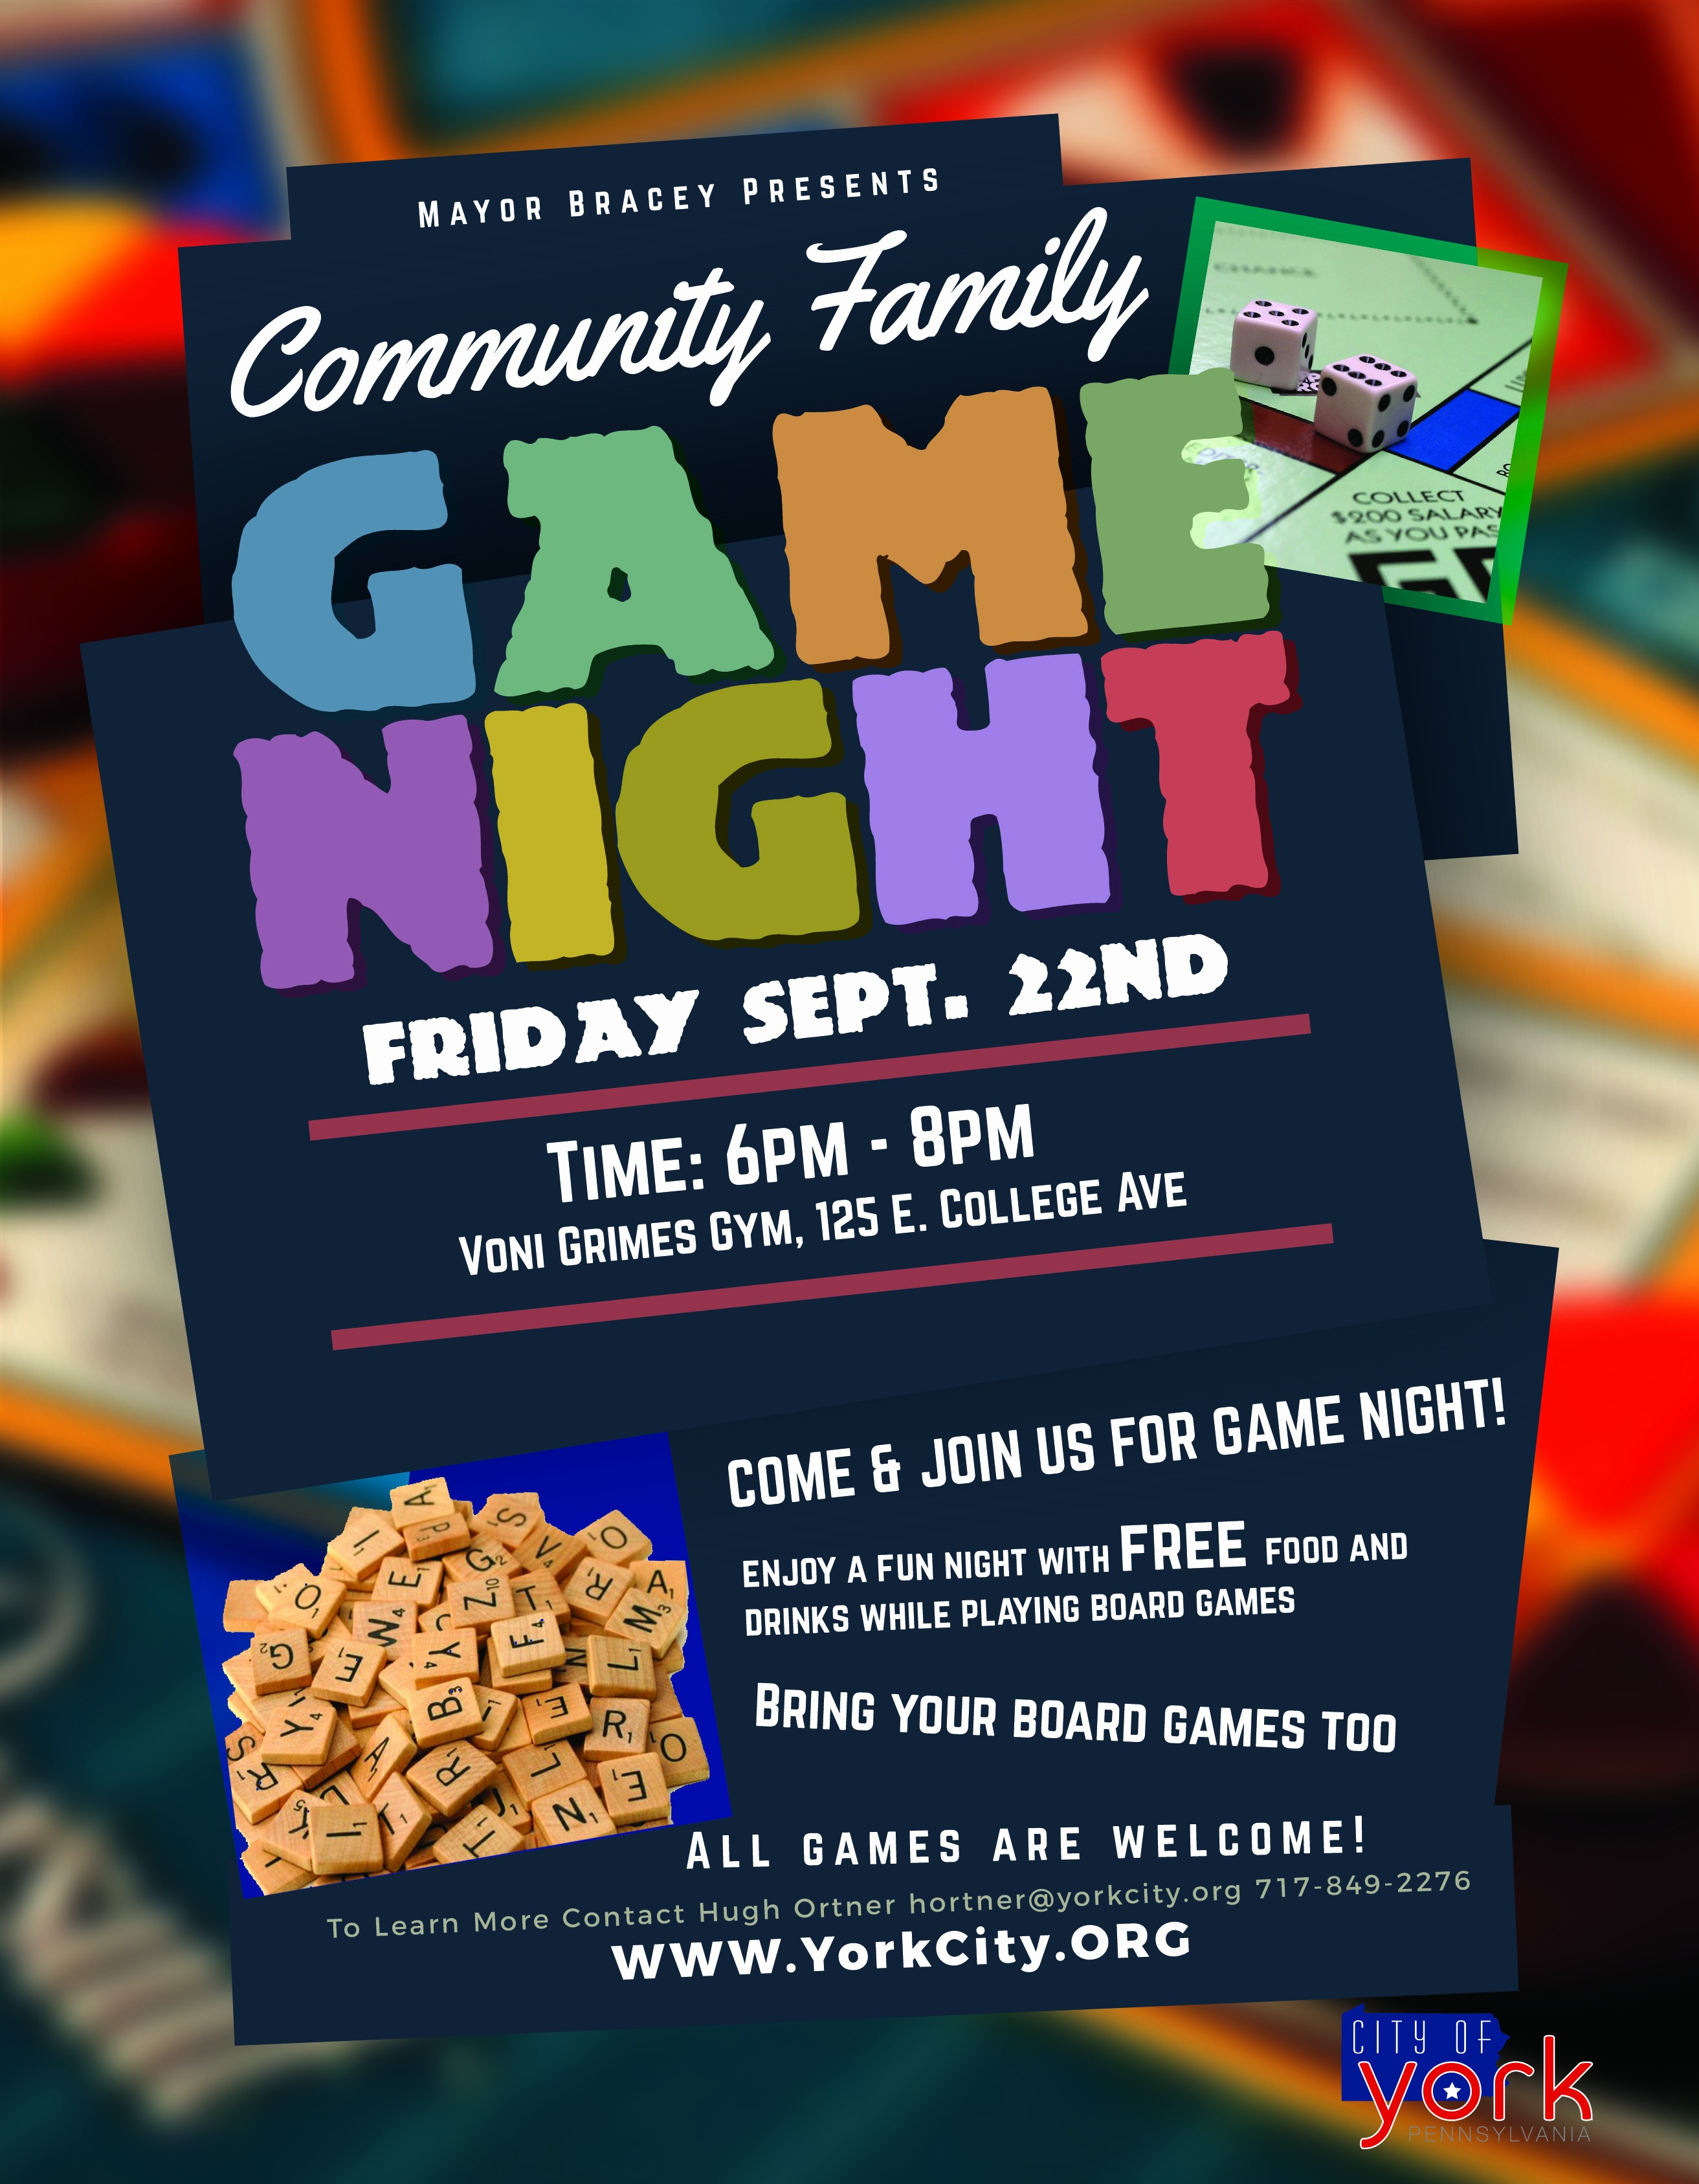 Board Game Night Flyer Template New Munity Family Game Night City Of York Pennsylvania